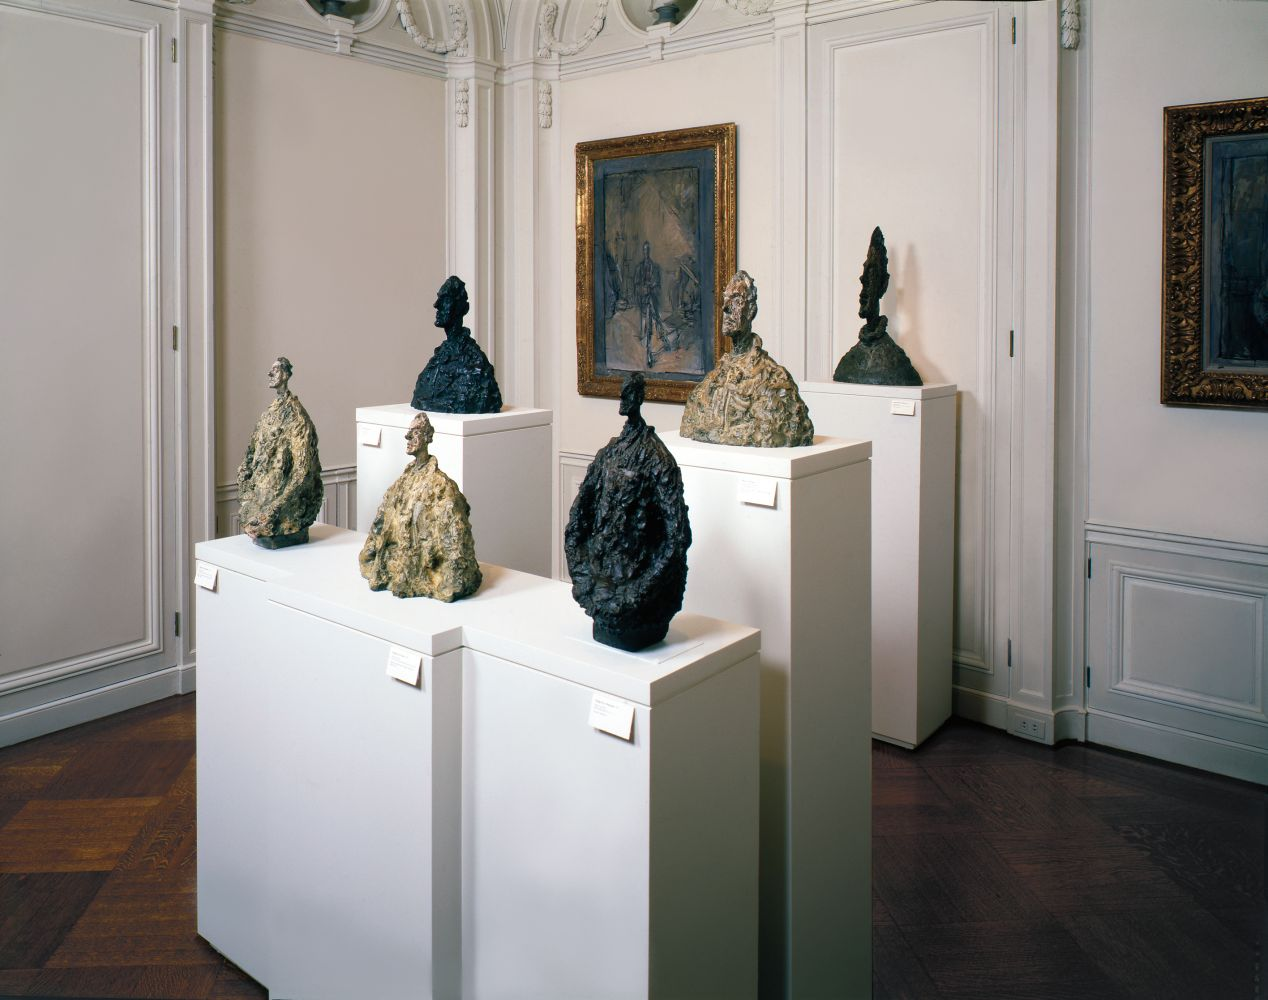 Instllation view of Alberto Giacometti exhibition, fall 1994. Art © Alberto Giacometti Estate / Licensed by VAGA and ARS, New York, NY.